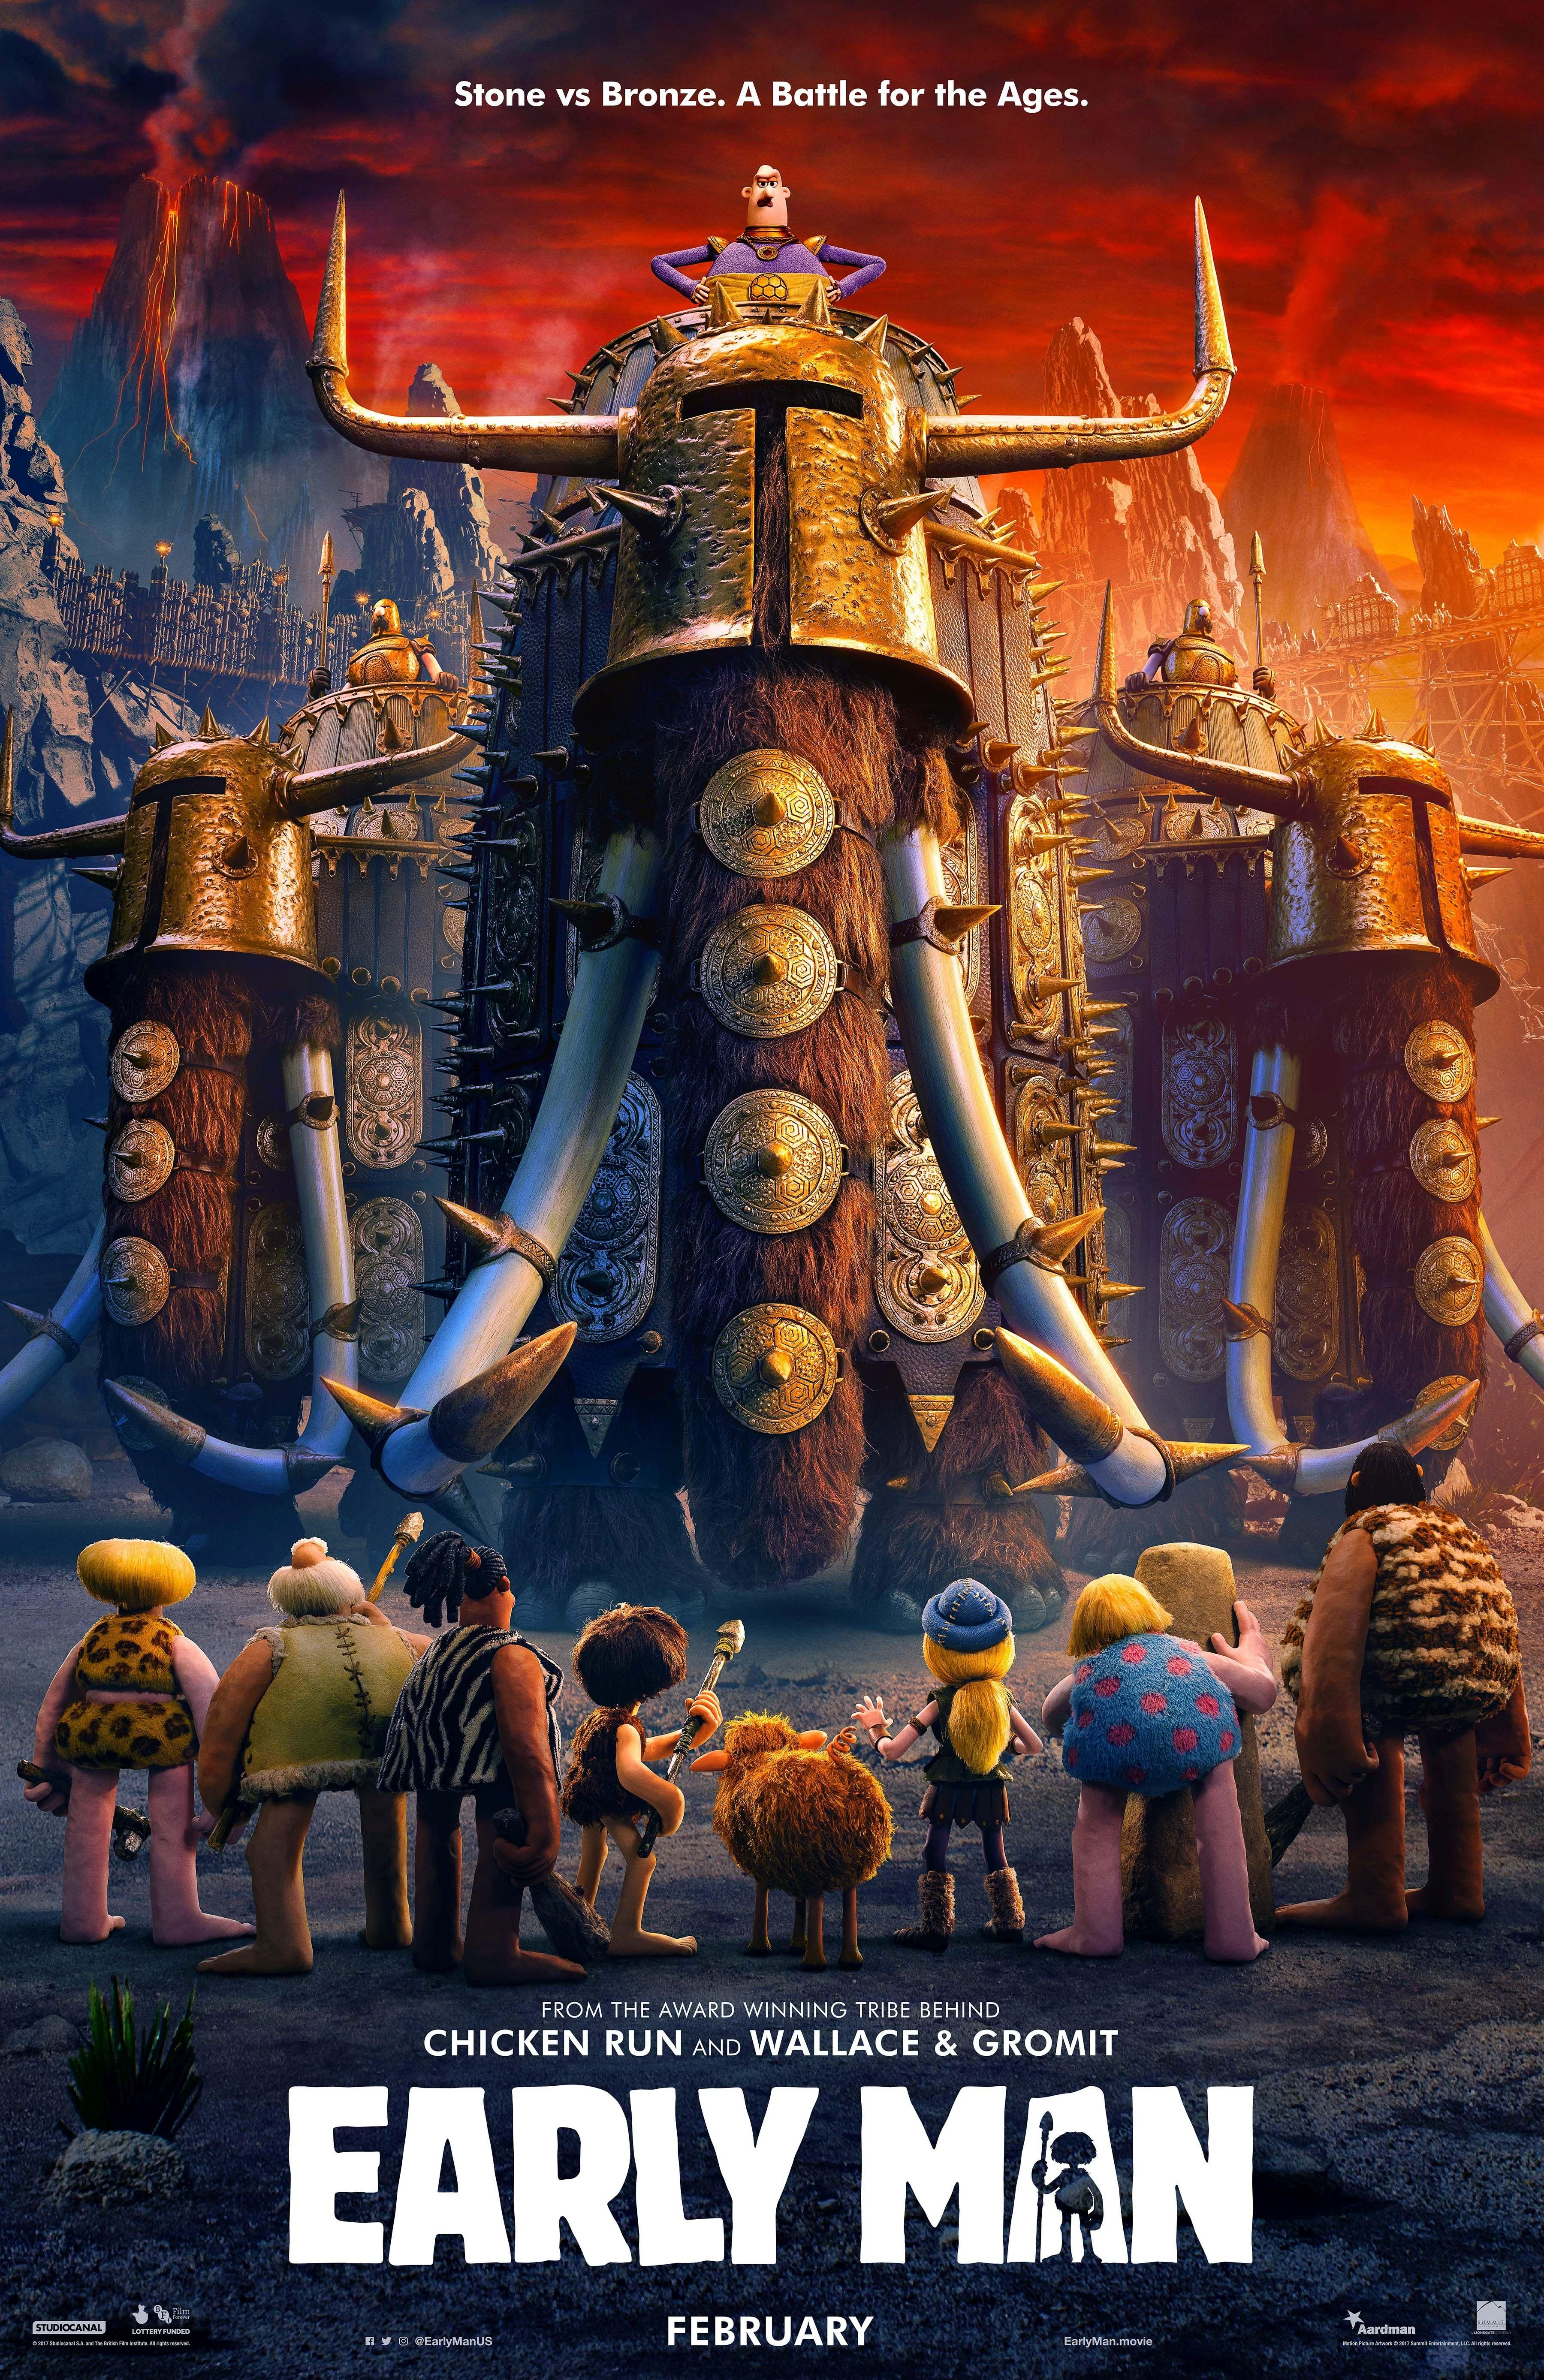 Check Out The New Teaser Trailer For The Upcoming Film Early Man Amp See The New Movie Posters For The Film Earlyman Animasyon Macera Filmleri Film